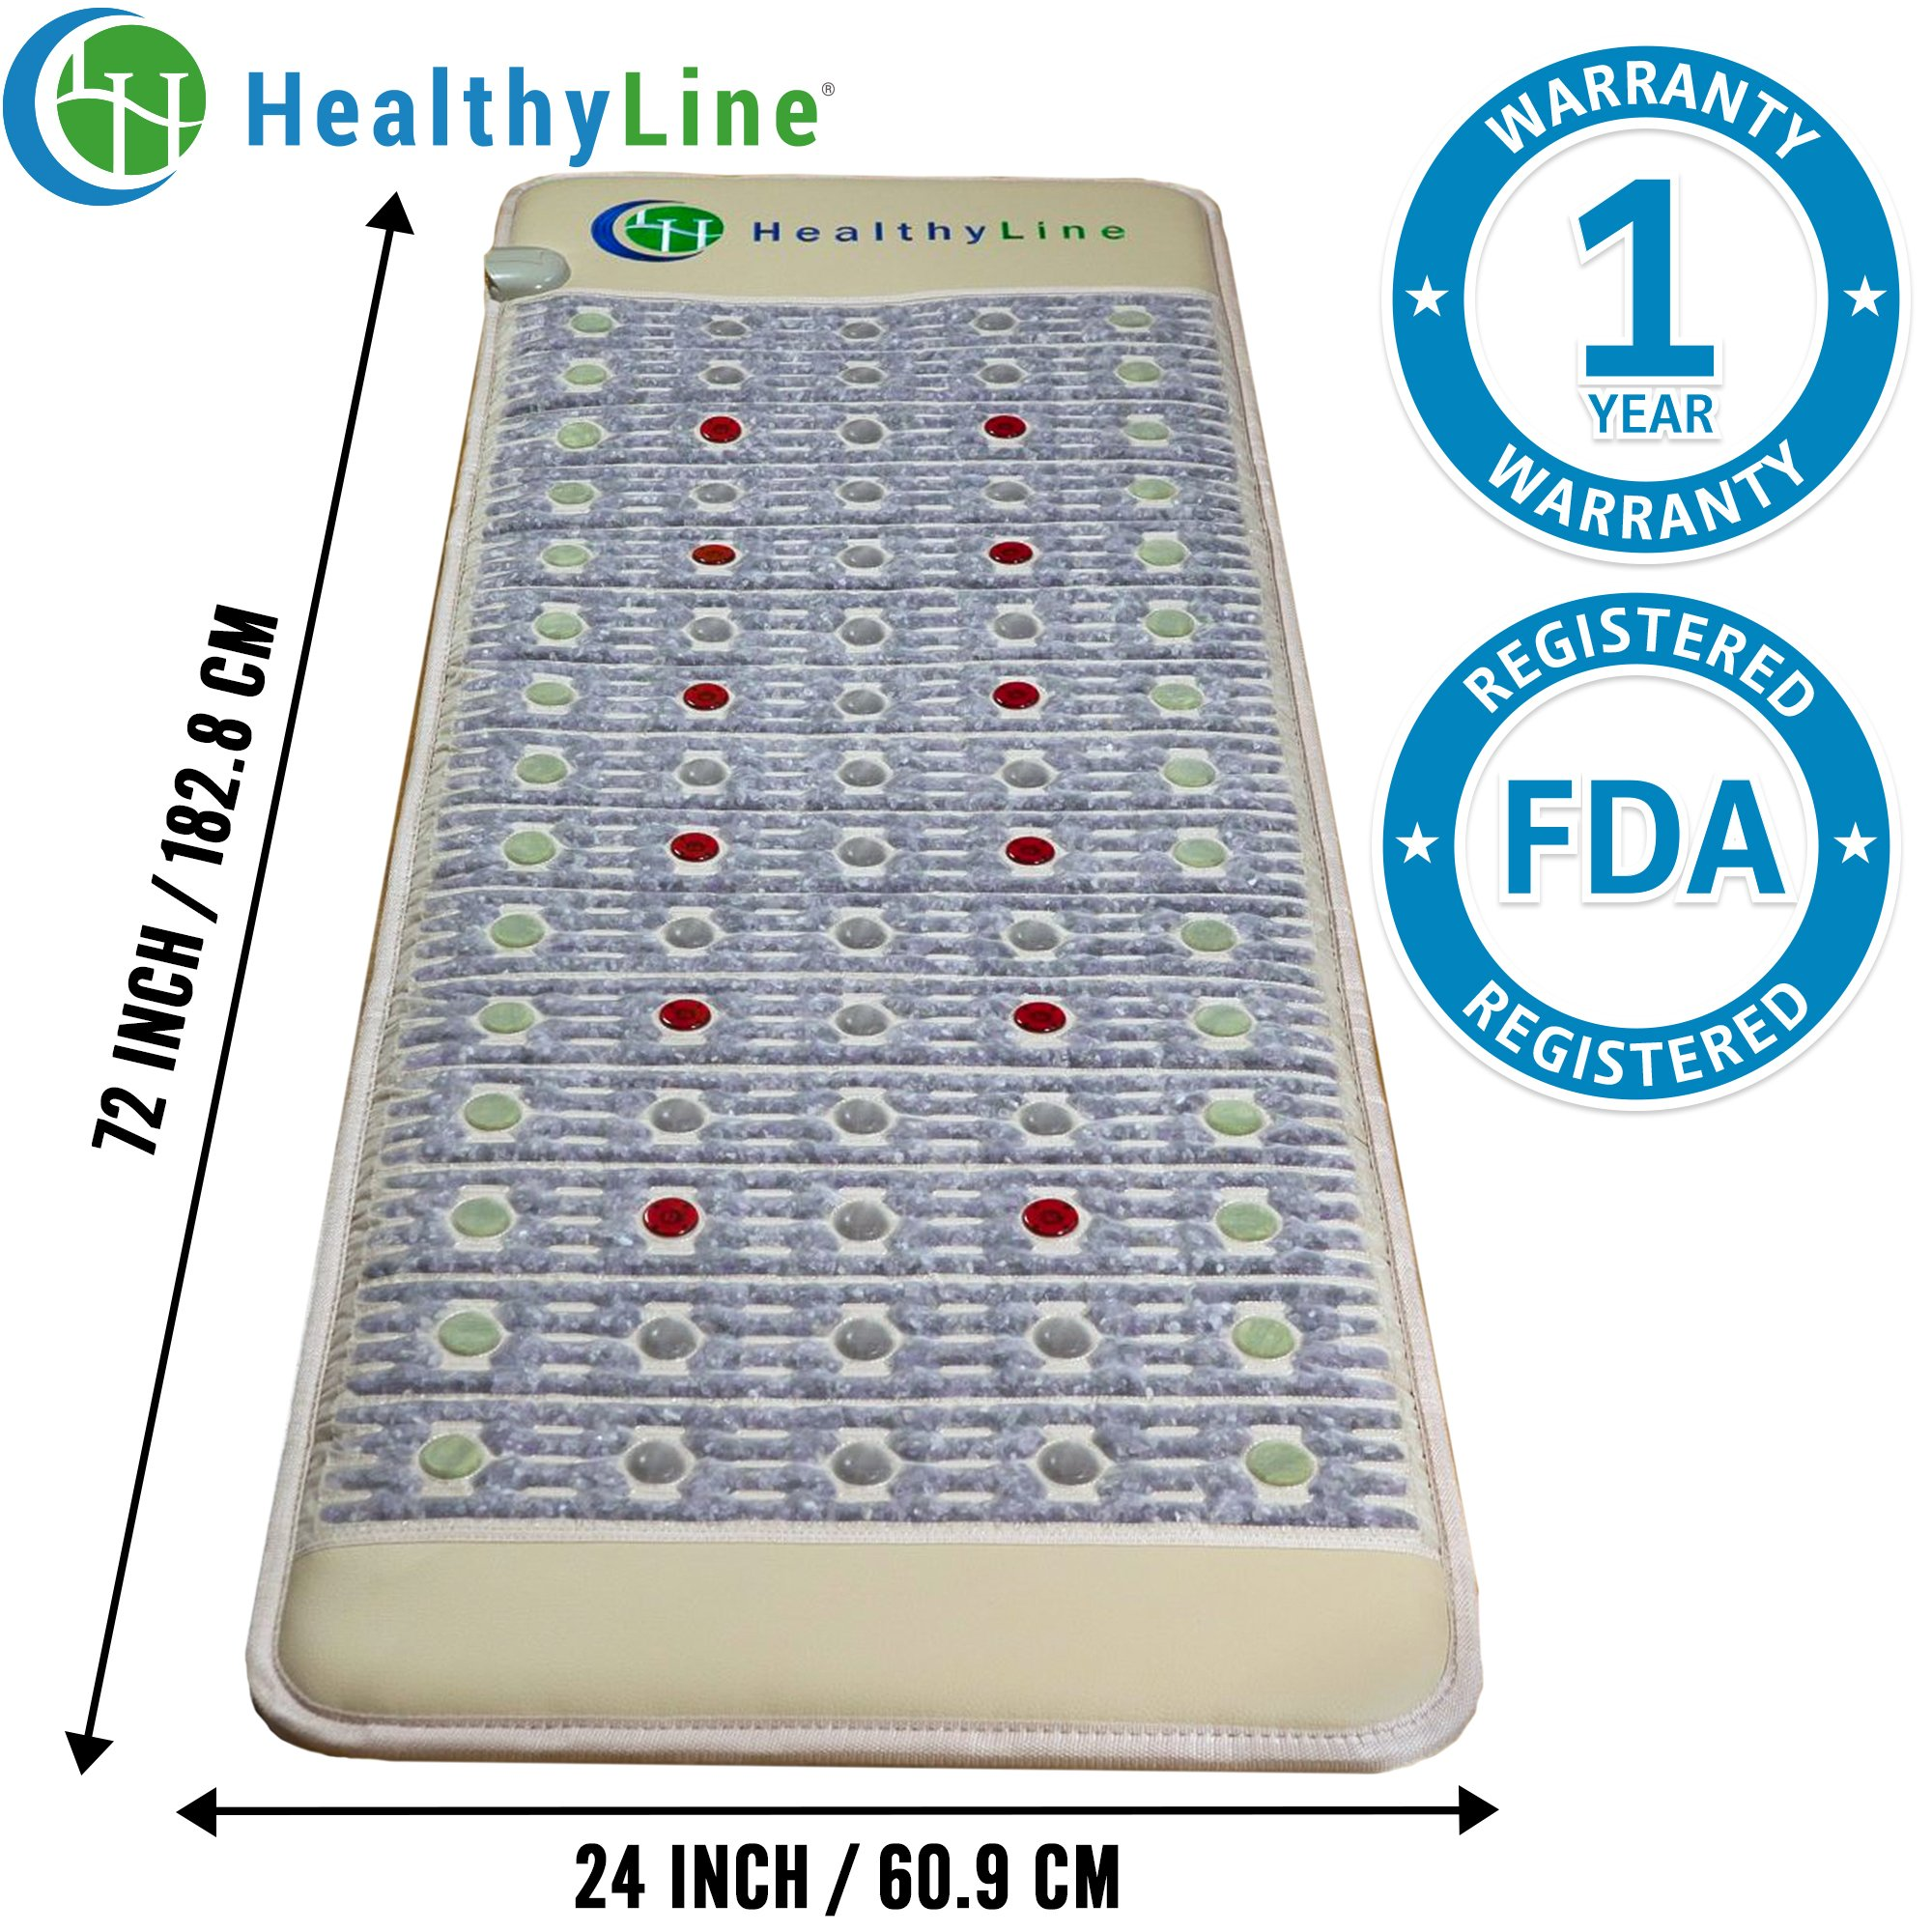 HealhyLine Natural Infrared Heating Mat - Relieve Pain, Sore Muscles, Arthritis and Injury Recovery - 6 PEMF Coils, 12 Photon LEDs, Amethyst, Jade & Tourmaline Ceramic Stone Firm (72″ x 24″) by HealthyLine